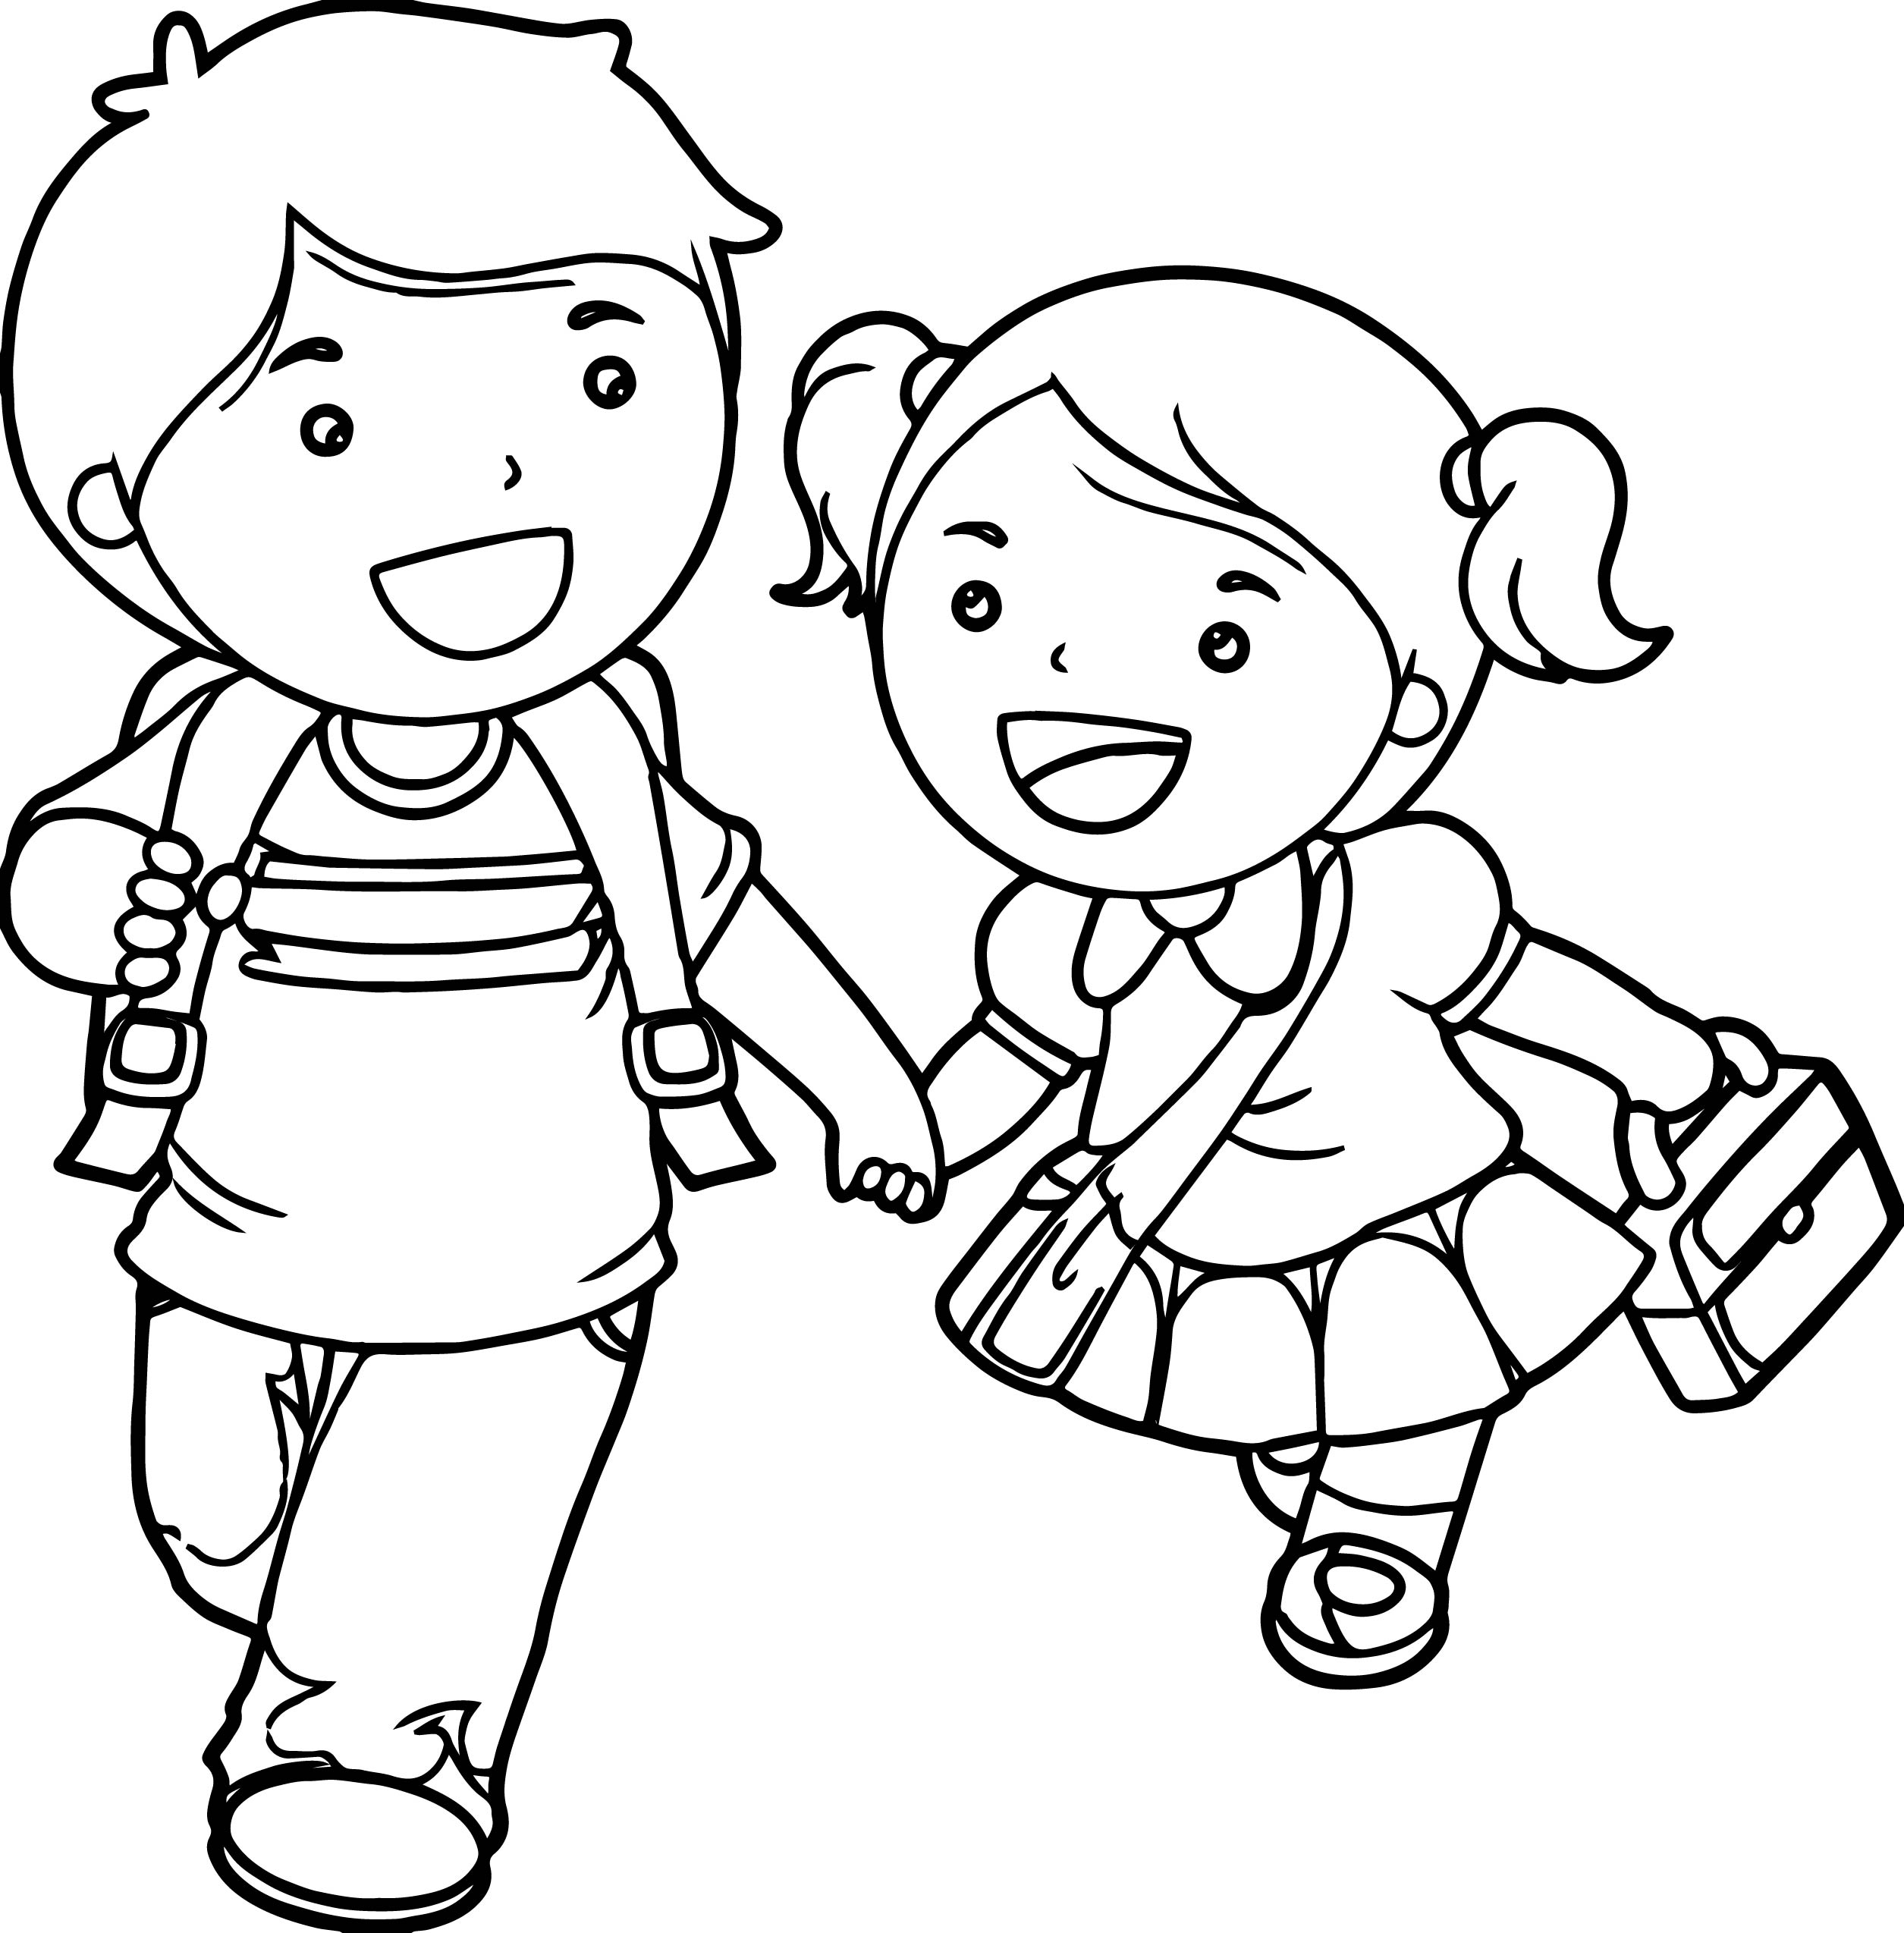 Little Boy And Girl Coloring Pages At Getdrawings